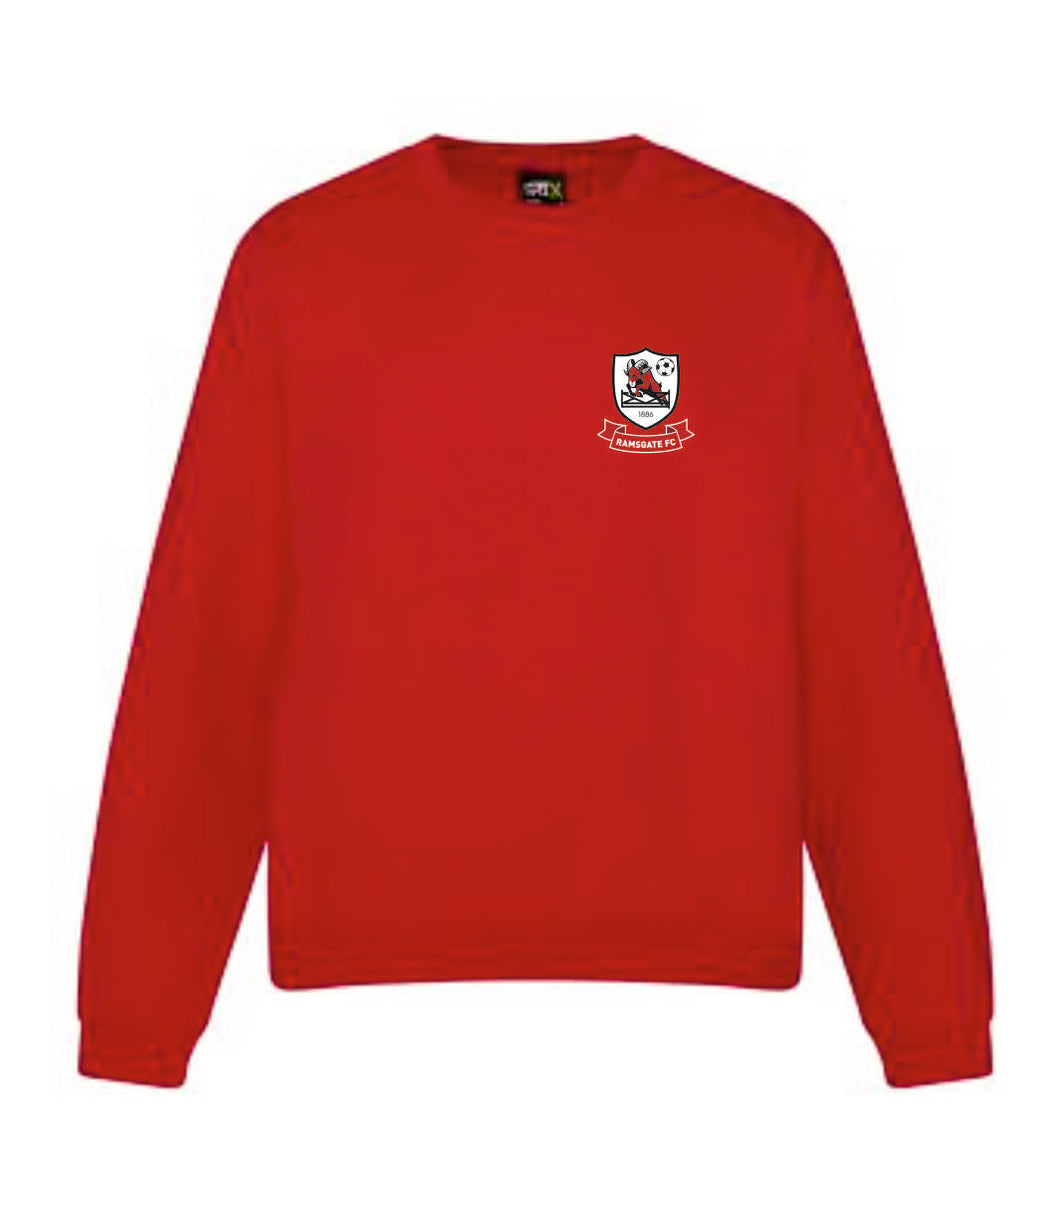 Ramsgate Football Club Sweatshirt